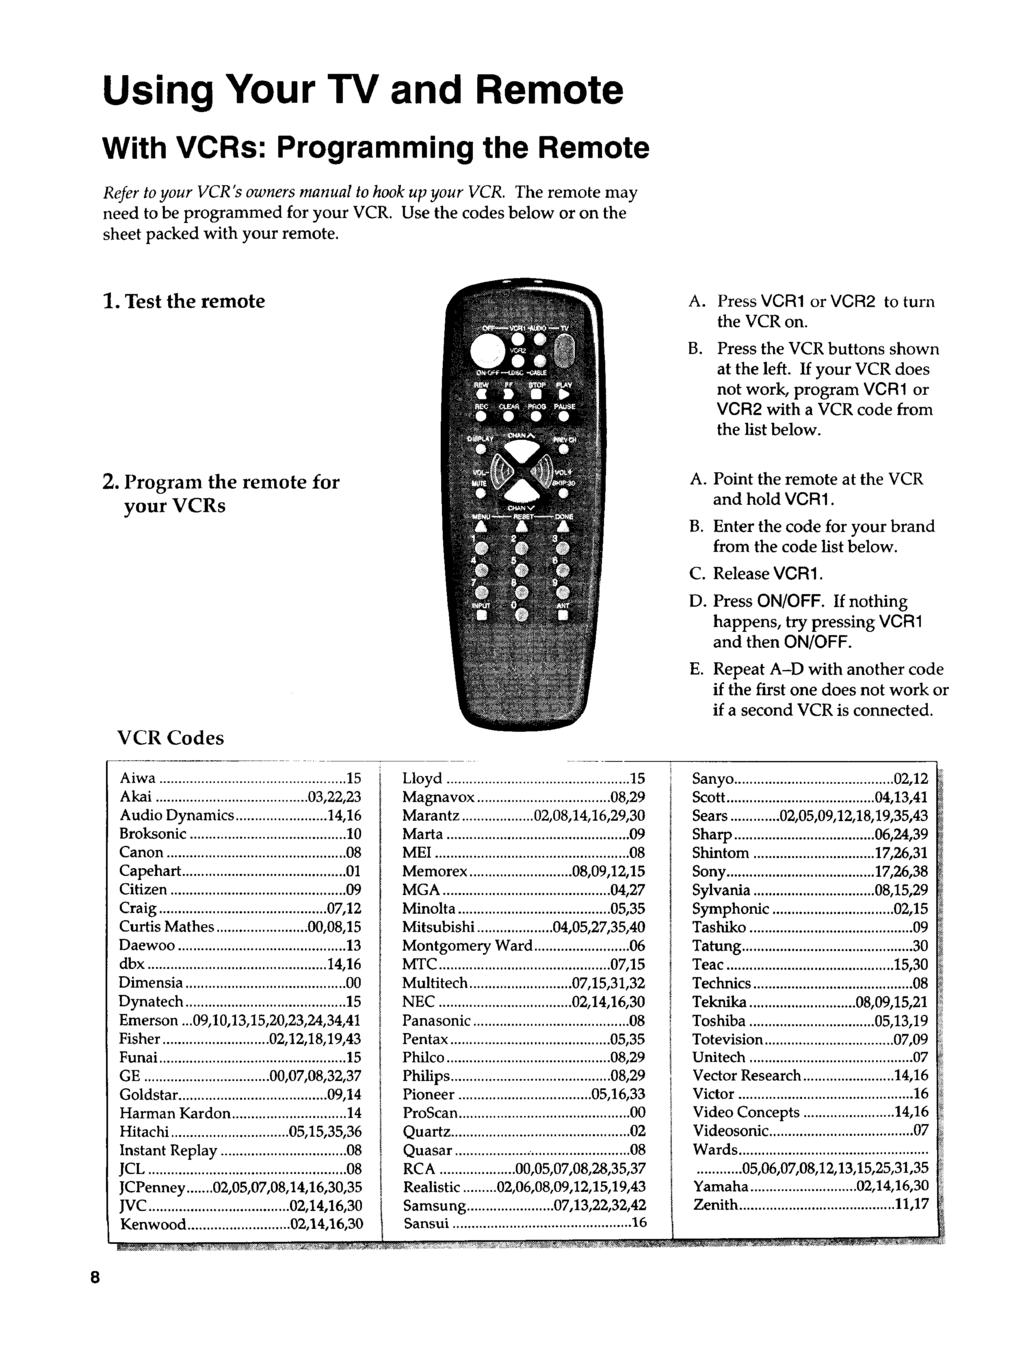 Using Your TV and Remote With VCRs: Programming the Remote Refer to your VCR's owners manual to hook up your VCR. The remote may need to be programmed for your VCR.